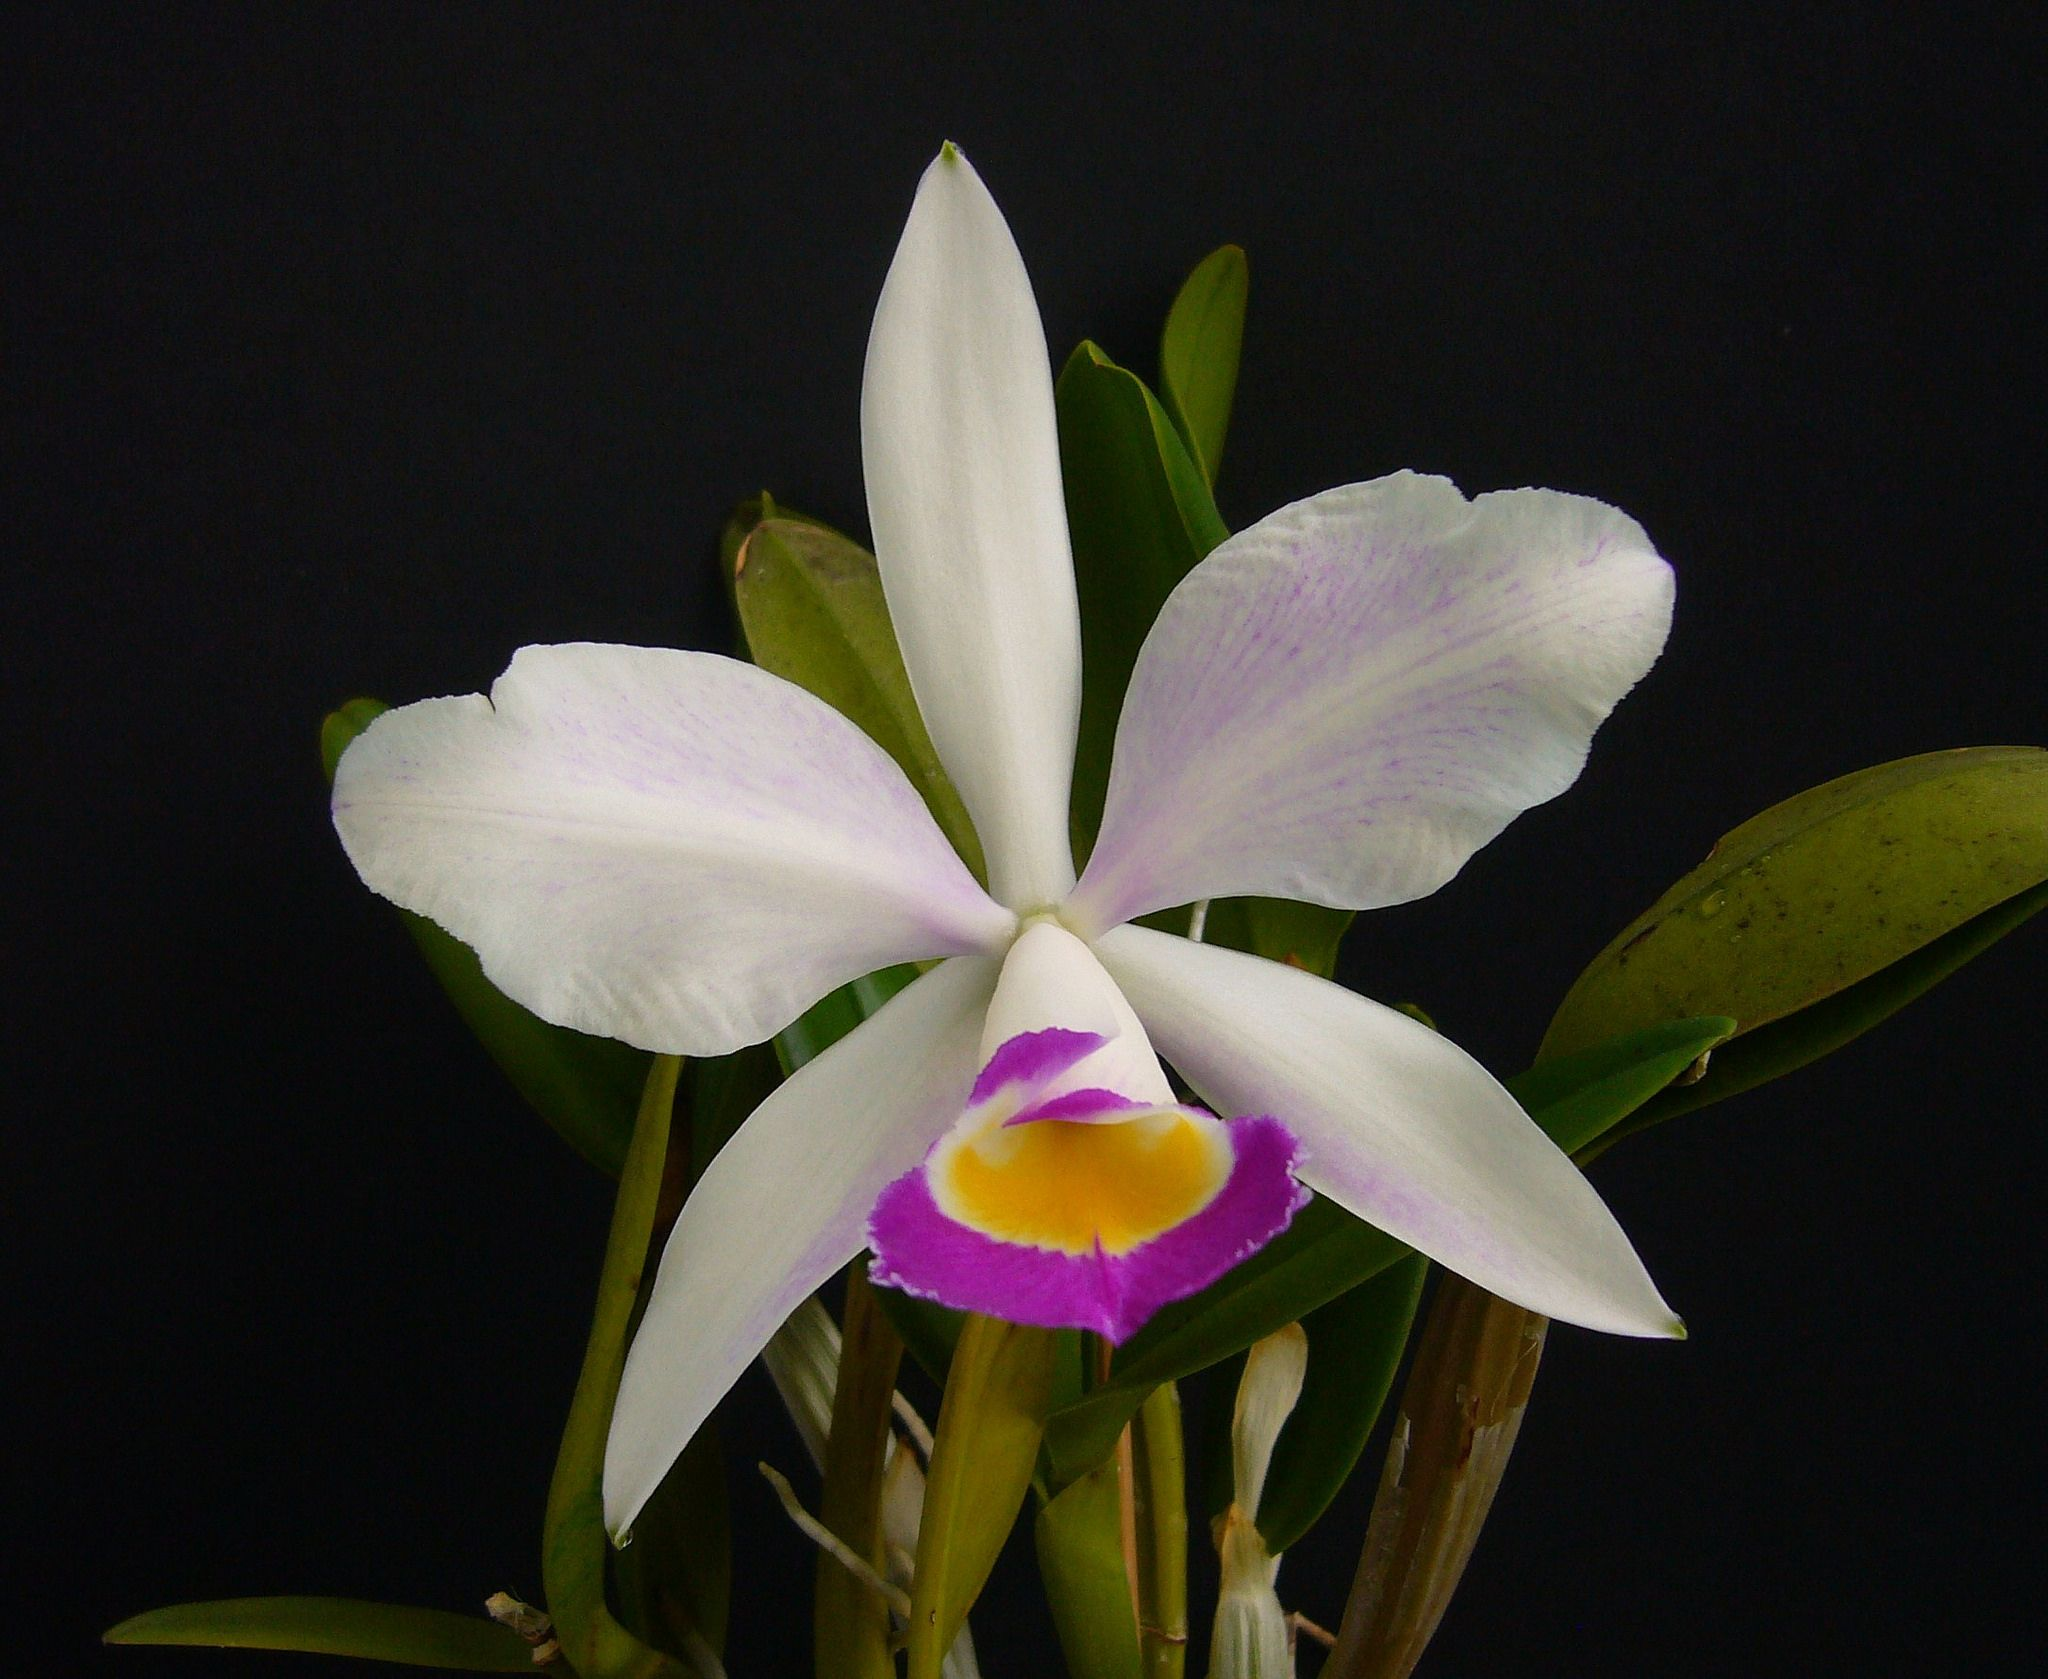 Cattleya × brymeriana var. semi-alba - Flickr - Photo Sharing!